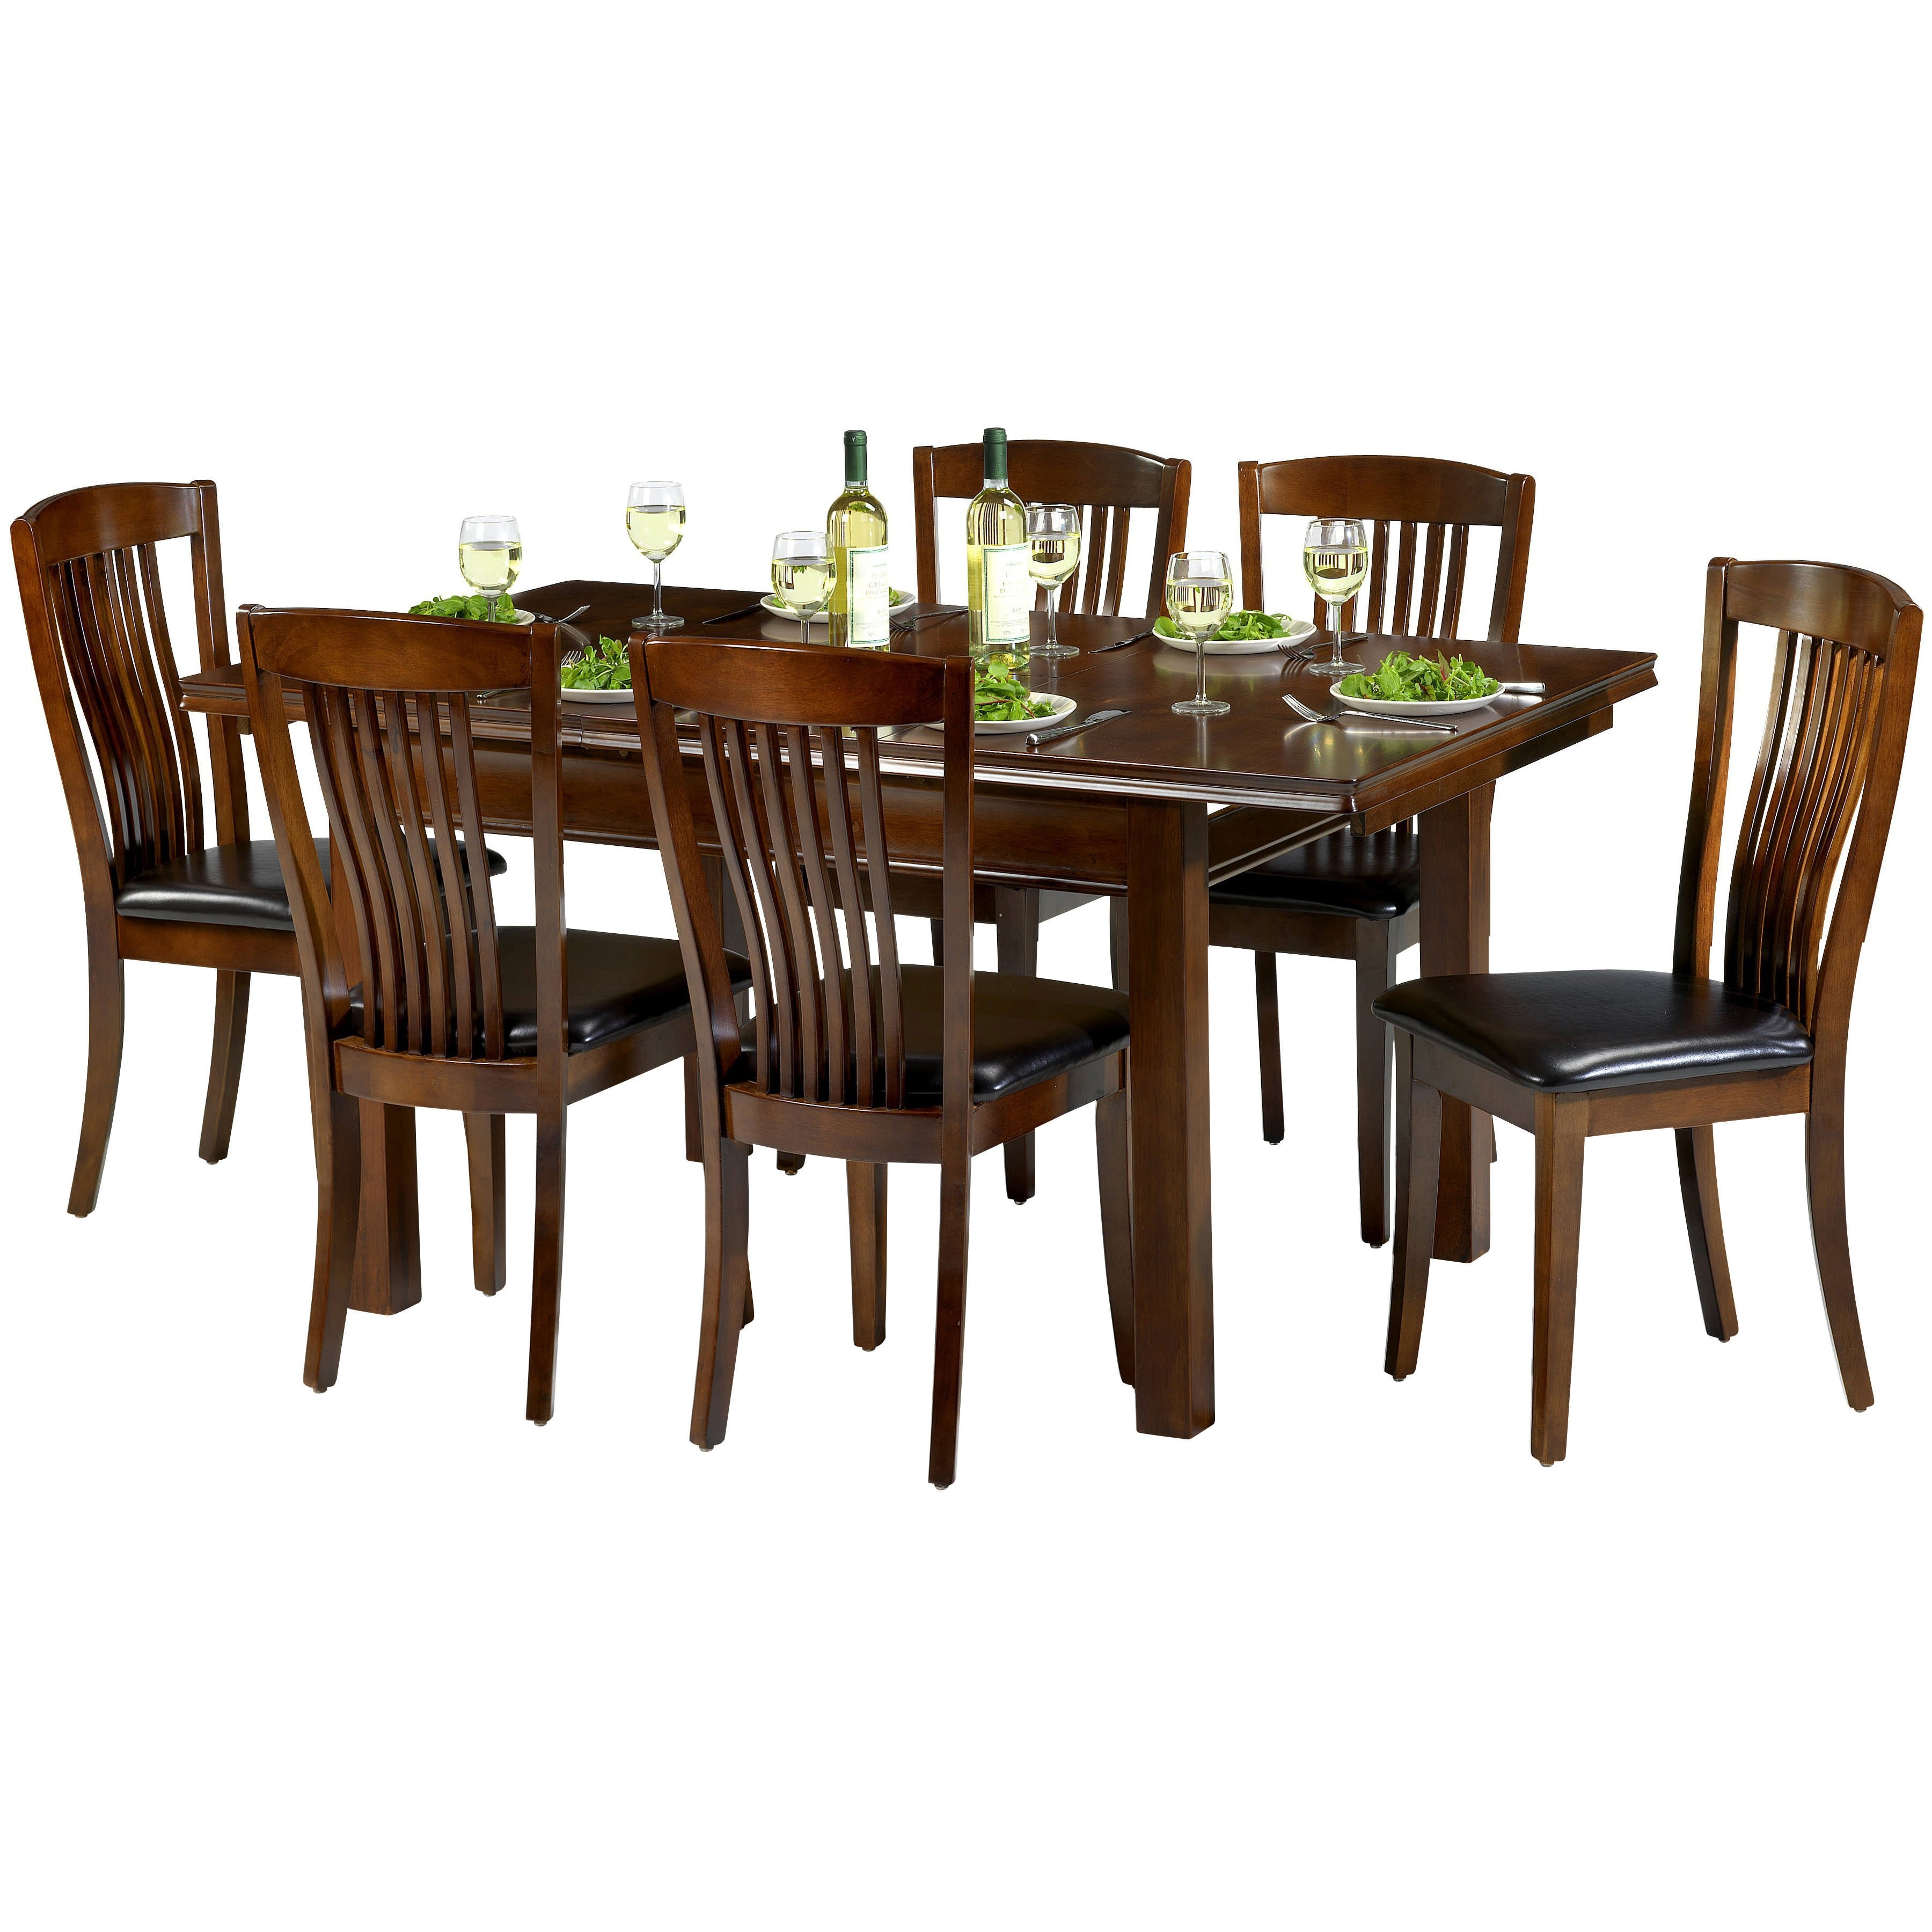 Widely Used Extendable Dining Table And 6 Chairs For Mahogany Finish Extending Extendable Dining Table And Chair Set With (View 25 of 25)